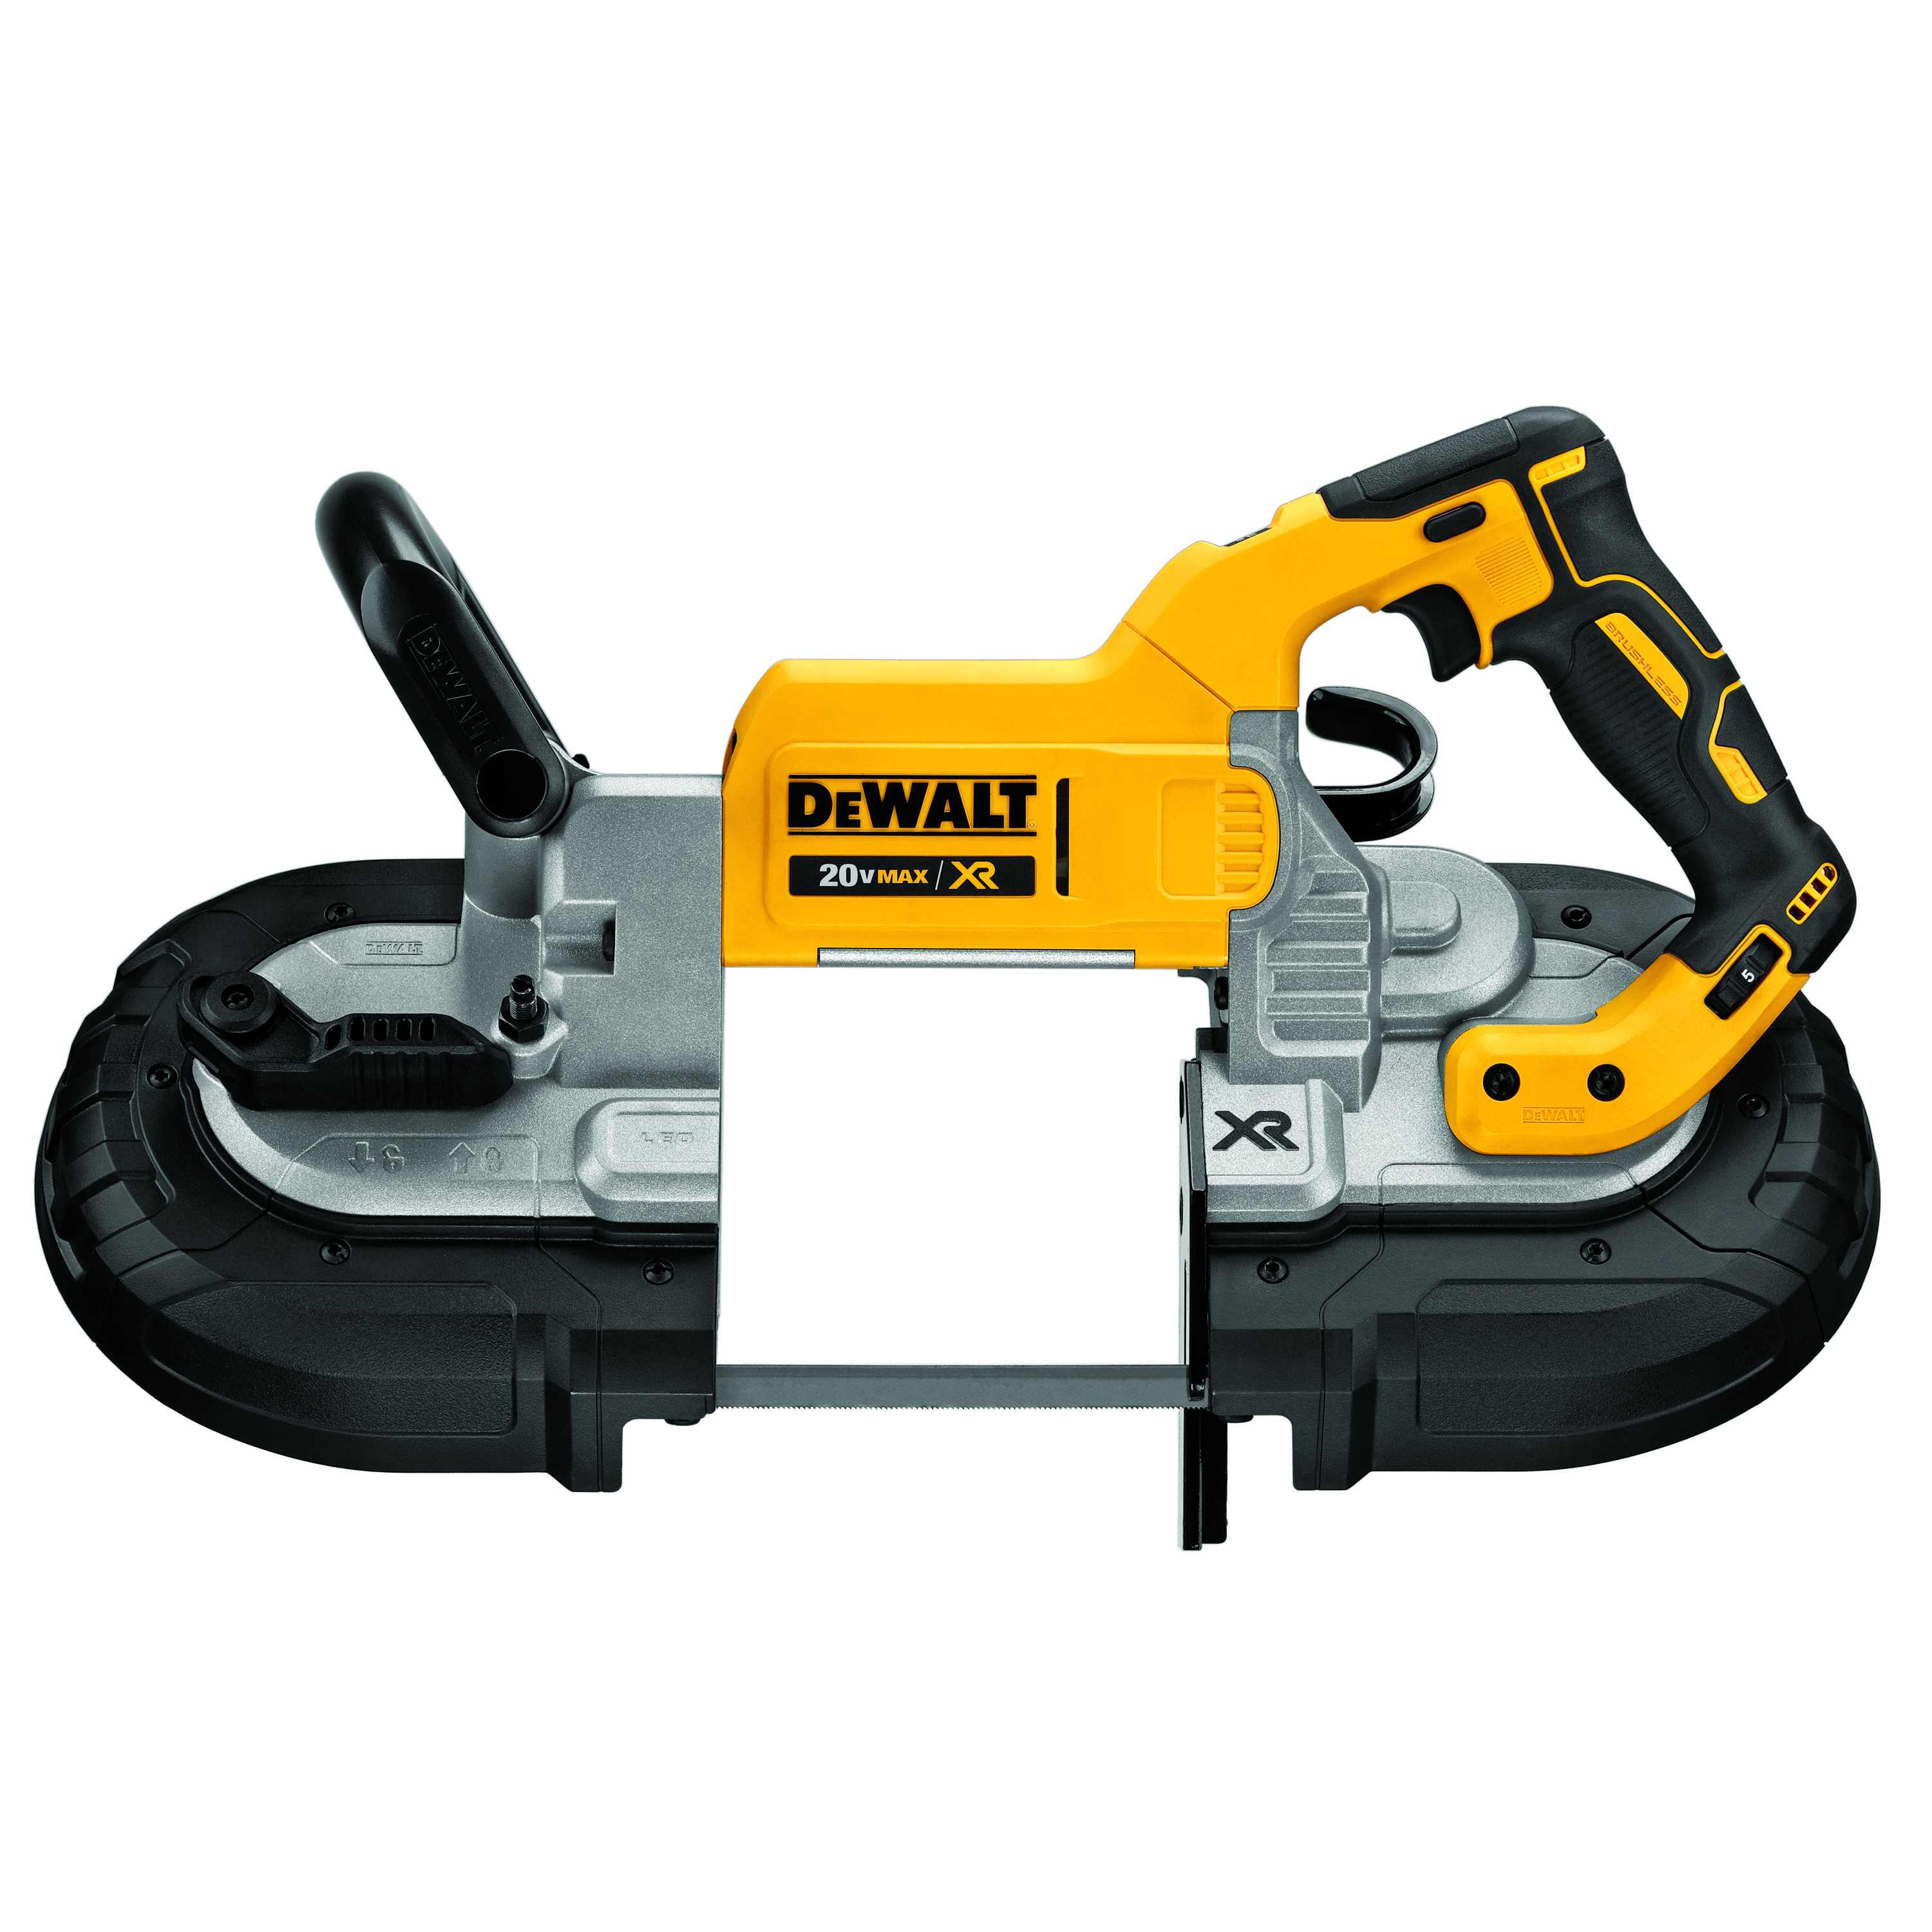 Dewalt Launches New Saws And Cordless Nailer Builder And